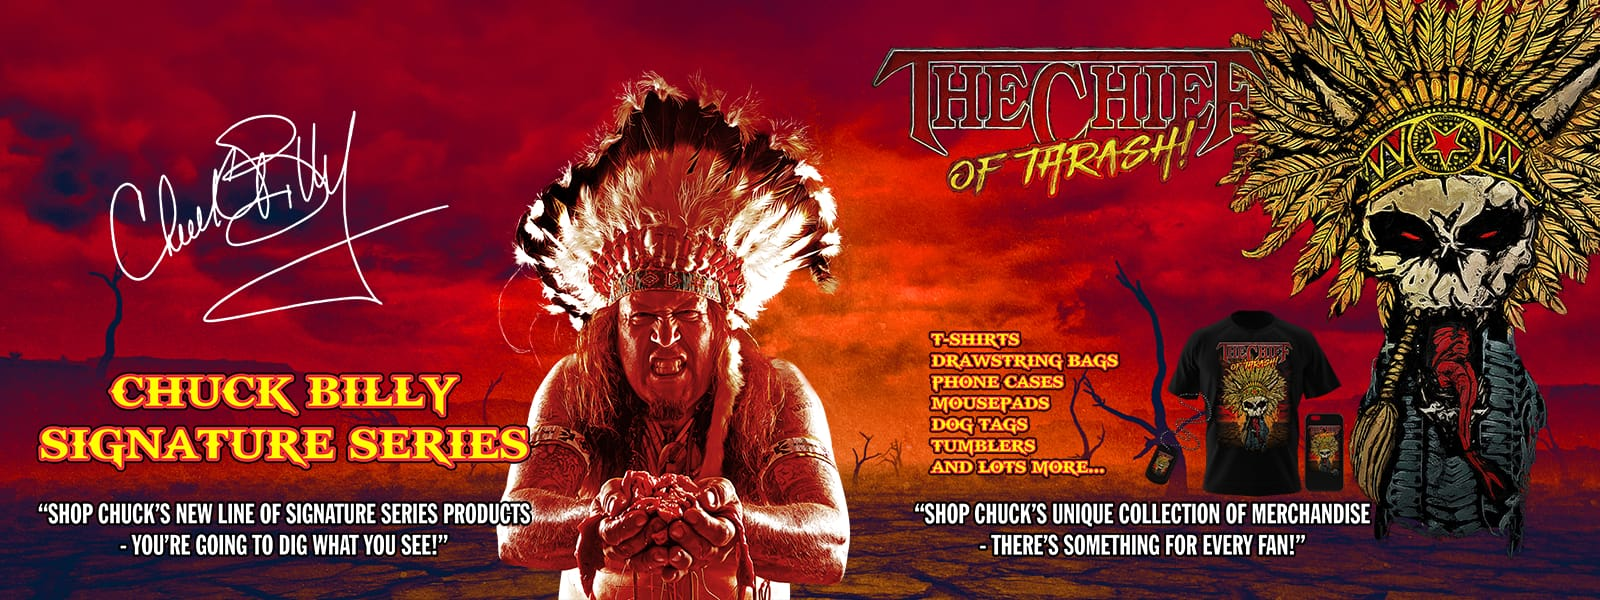 Chuck Billy lead vocalist of legendary Testament offers his The Chief Signature Series and The Chief of Thrash collection